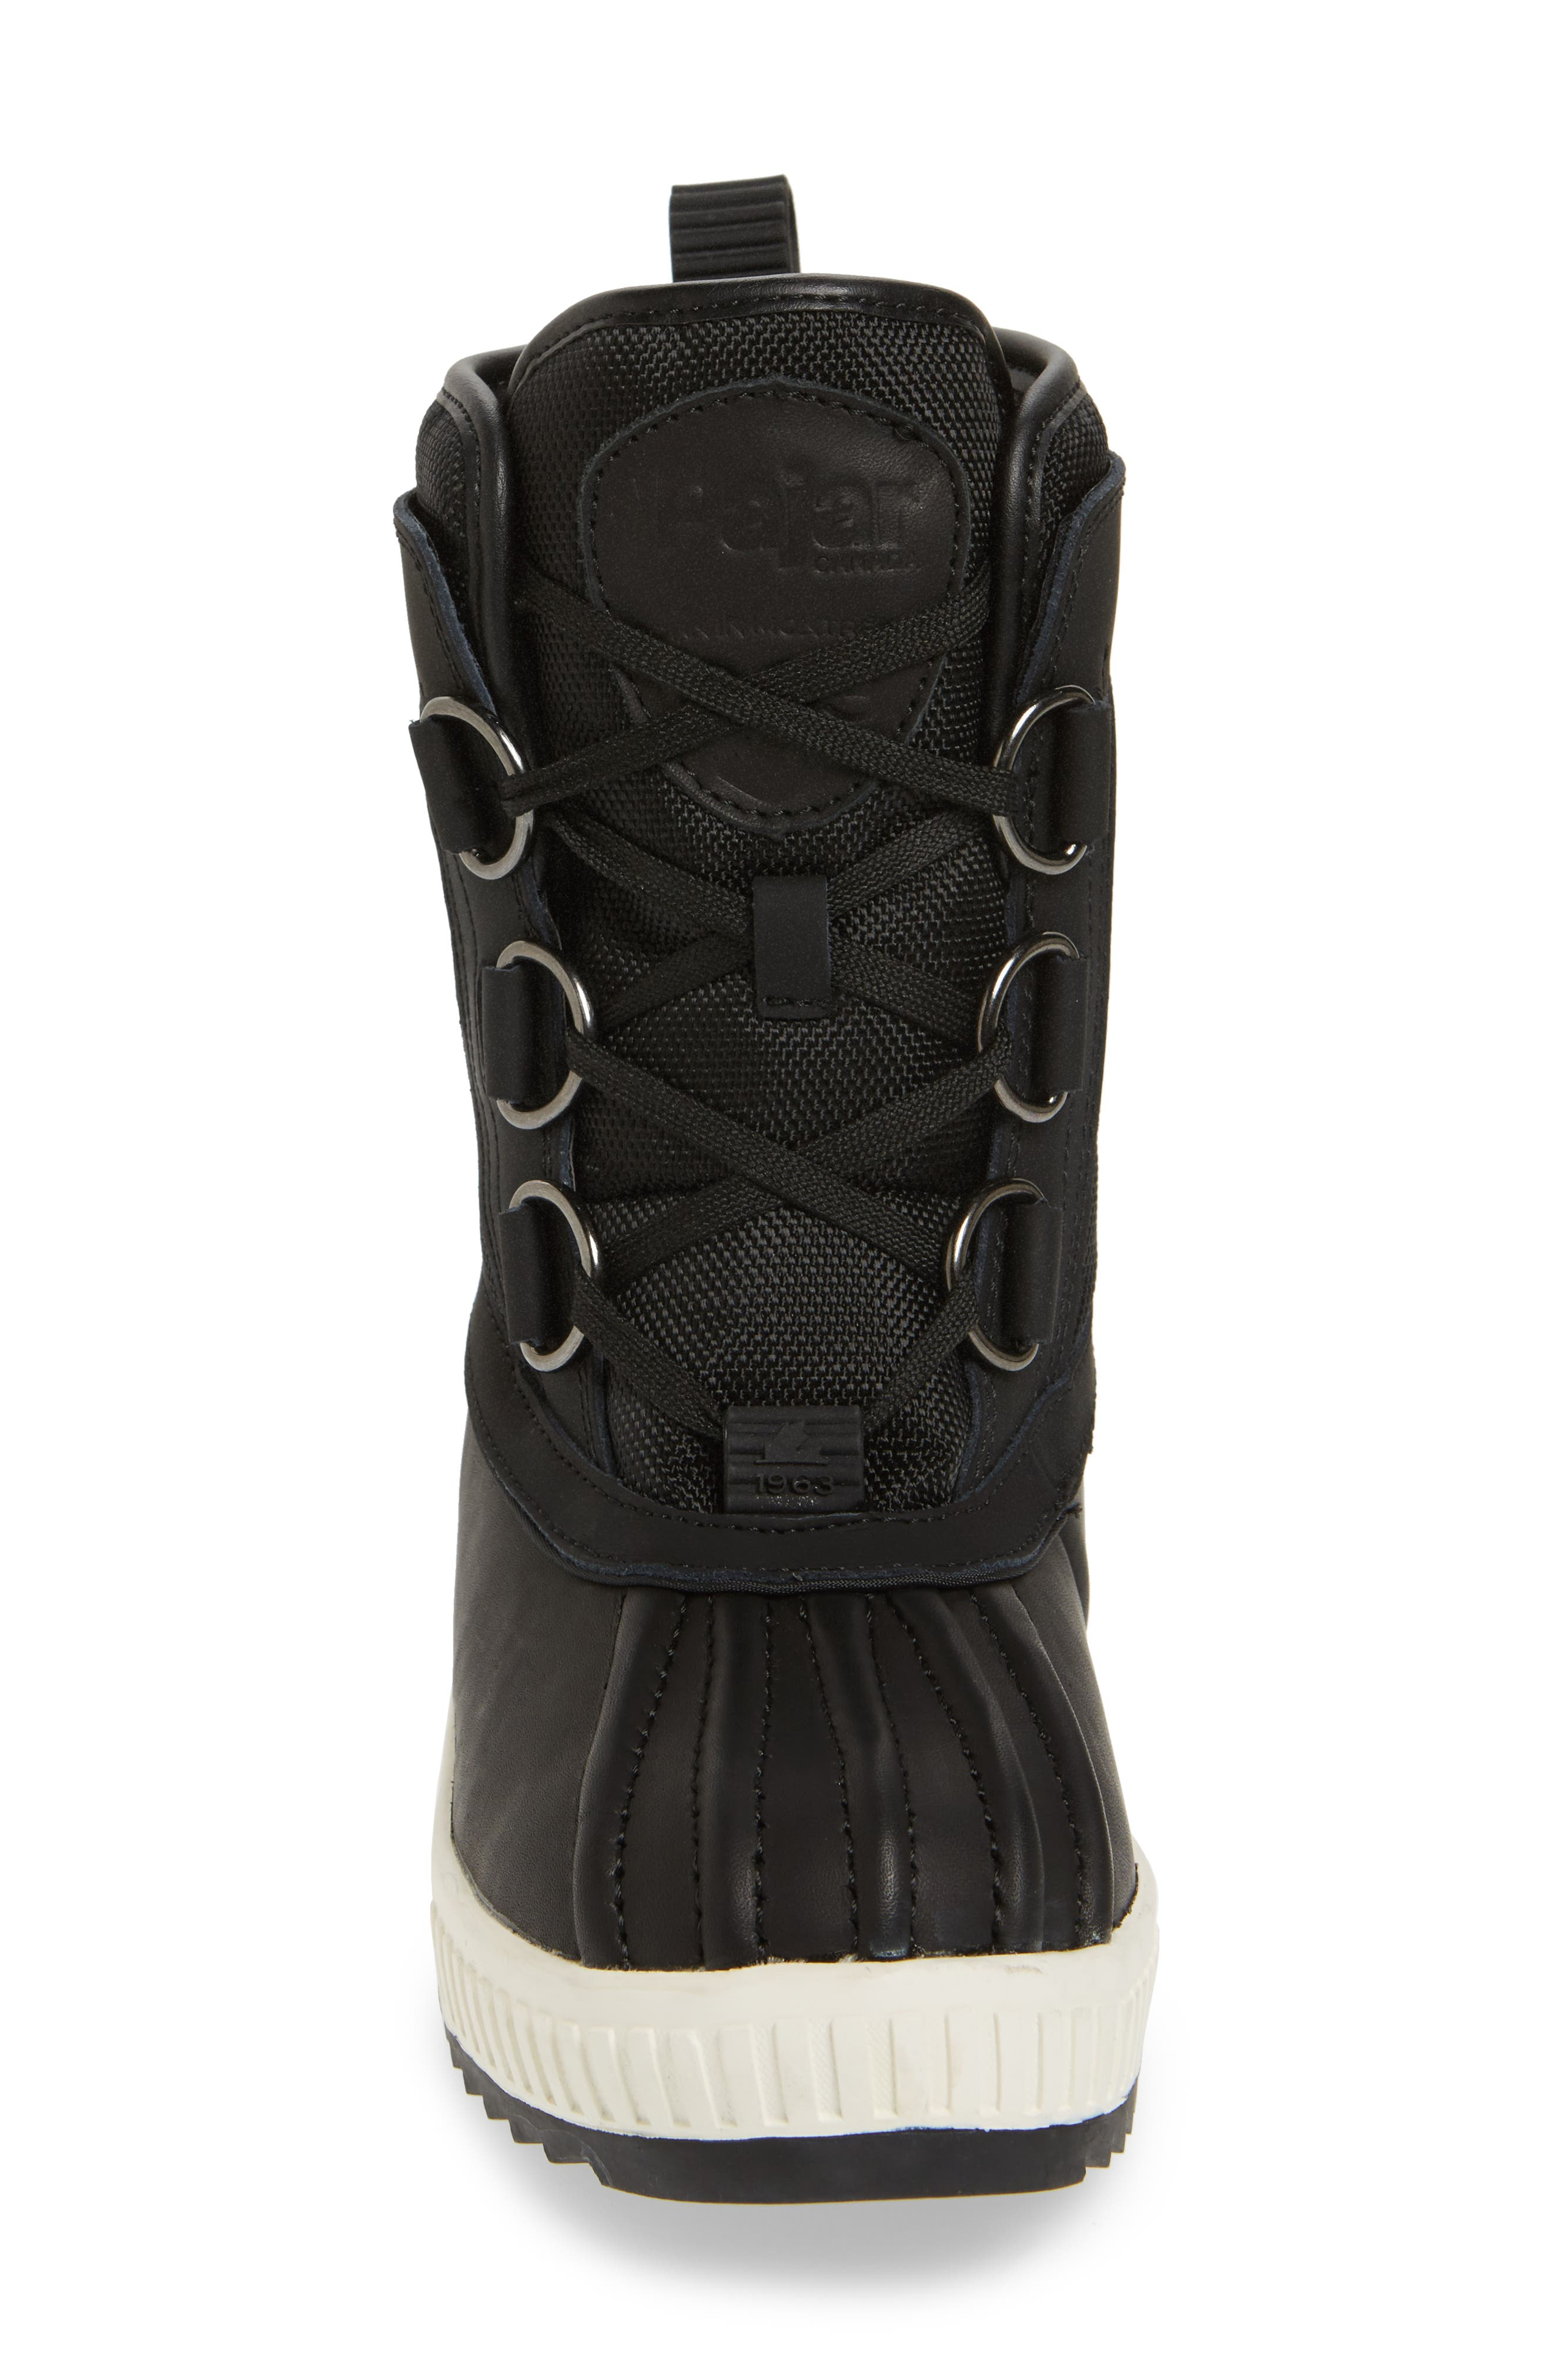 Kai Waterproof Insulated Winter Duck Boot,                             Alternate thumbnail 4, color,                             Black/ Black Leather